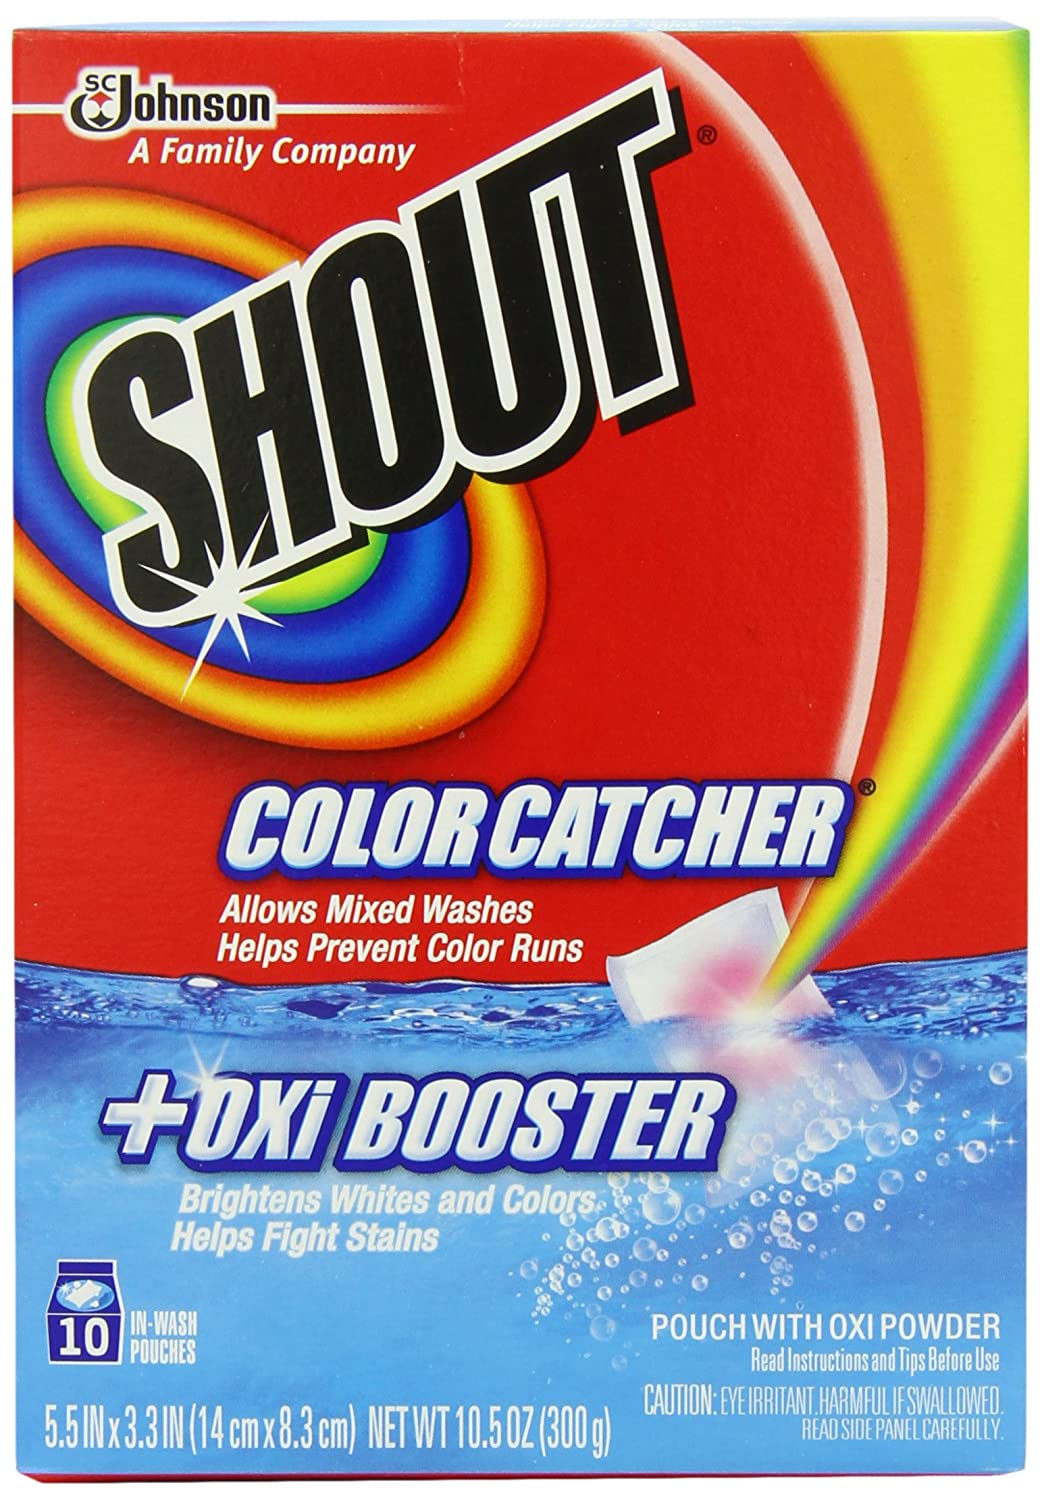 Colour catcher sheets - Amazon Com Shout Color Catcher With Oxi 10 Count Pack Of 2 Health Personal Care